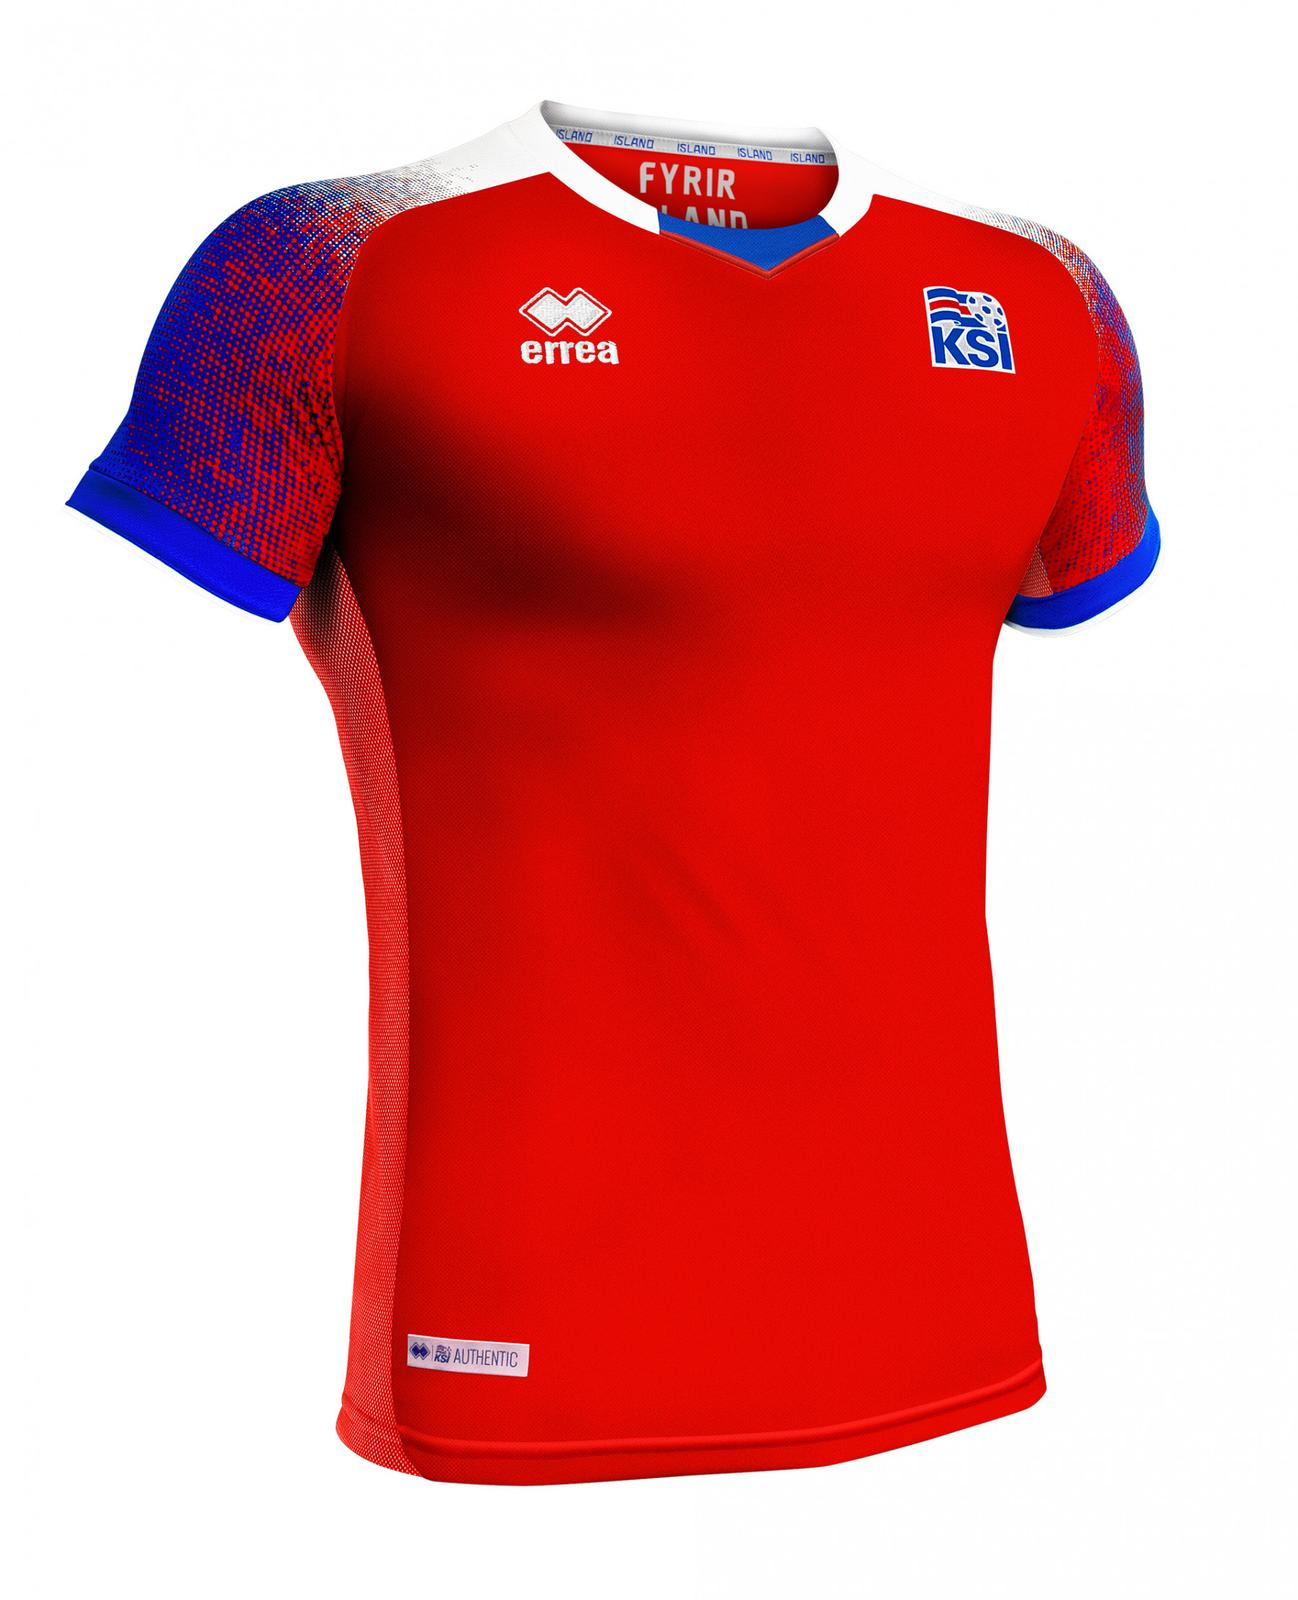 hot sale online 3d05d 75eb1 Iceland 2018 World Cup Home and Away Kits Released | Futbolgrid